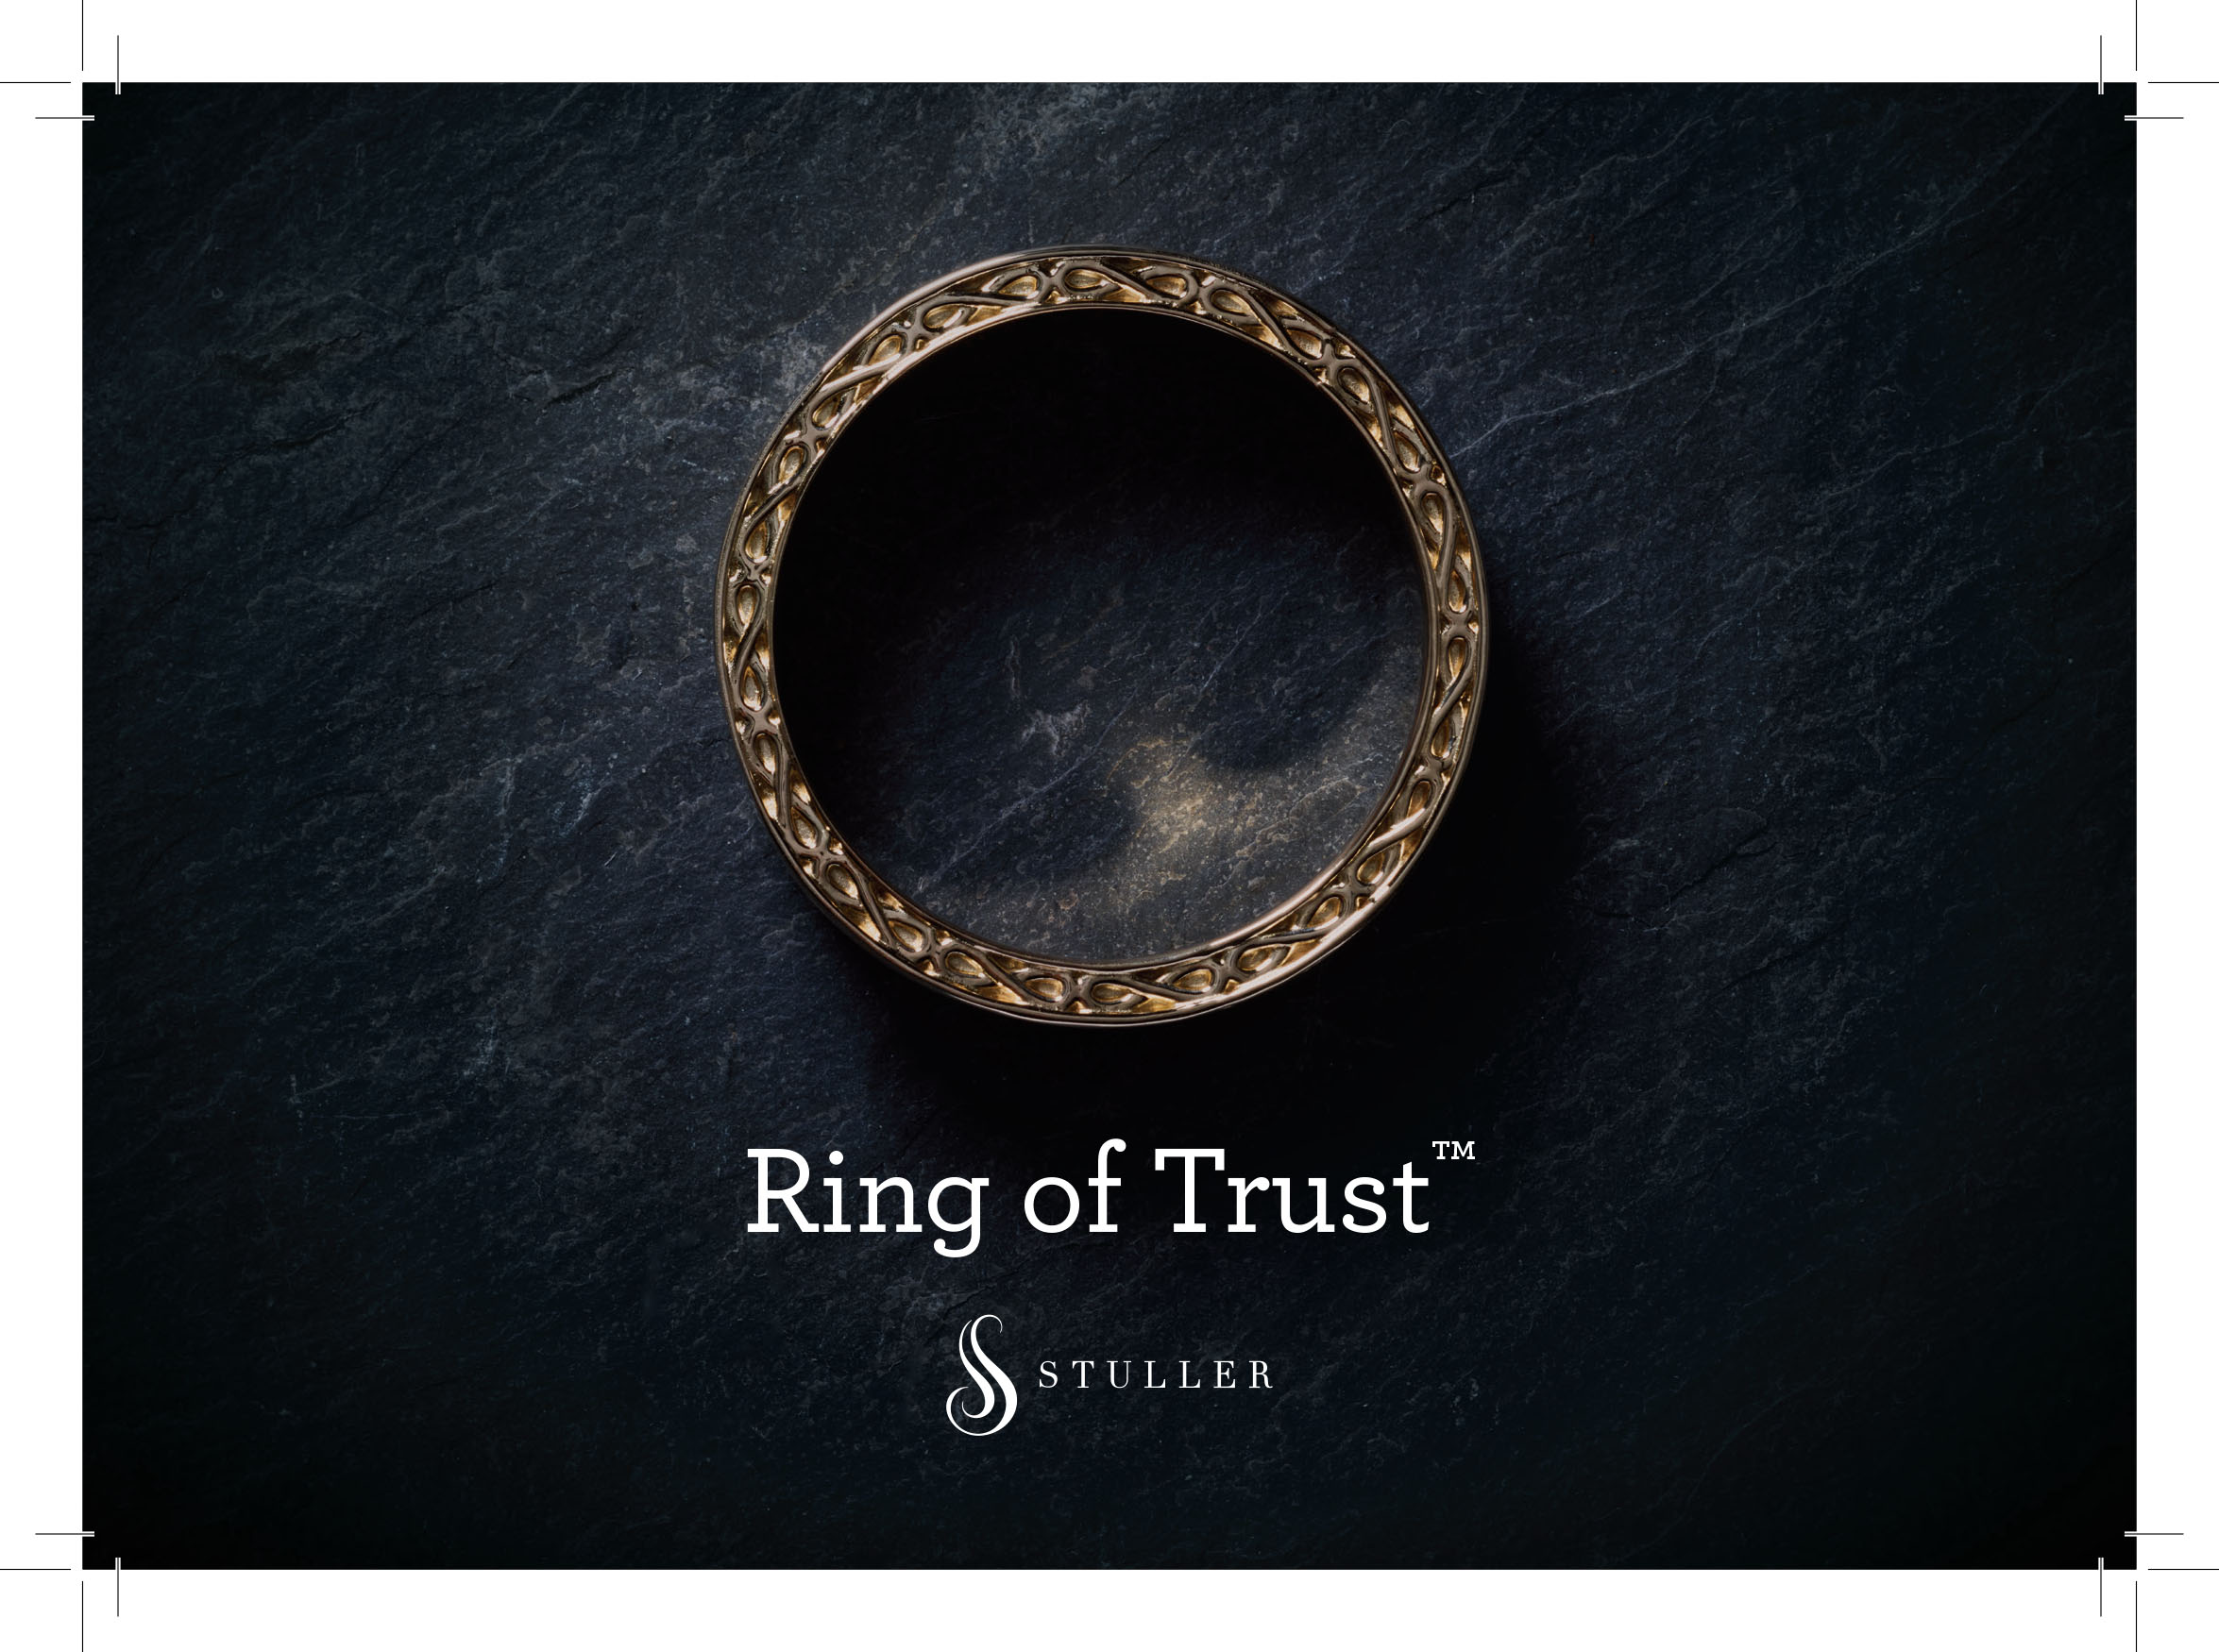 Tausch design example. Image of a ring with the word's